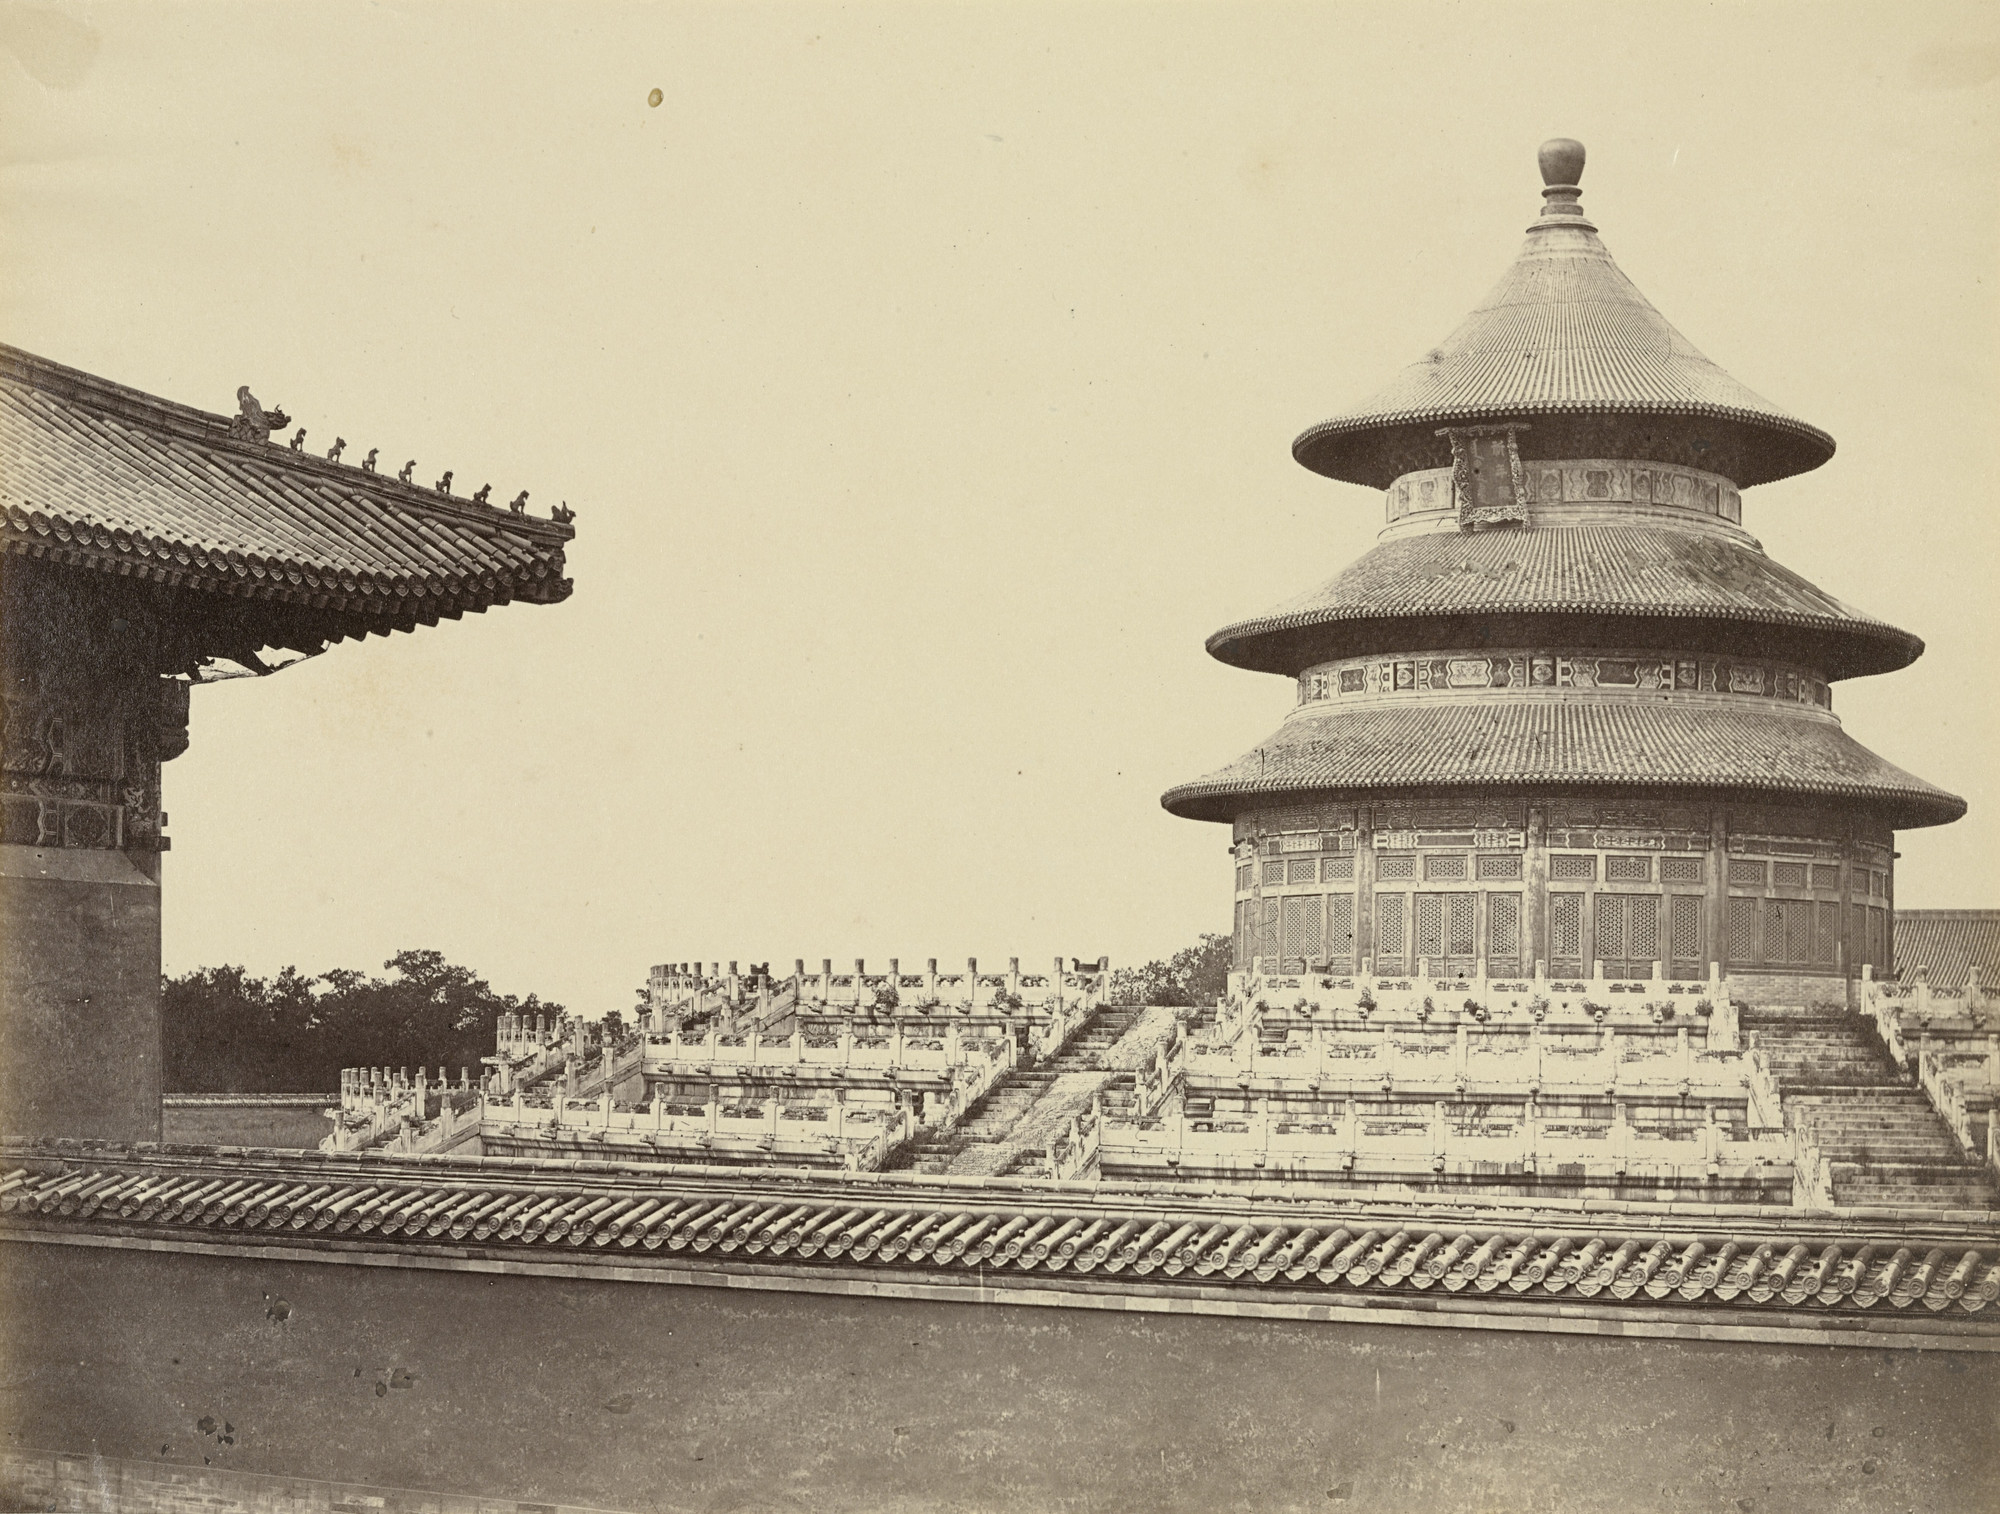 Felice Beato. Temple of Heaven from the Place Where the Priests are Burnt in the Chinese City of Pekin. October 1860